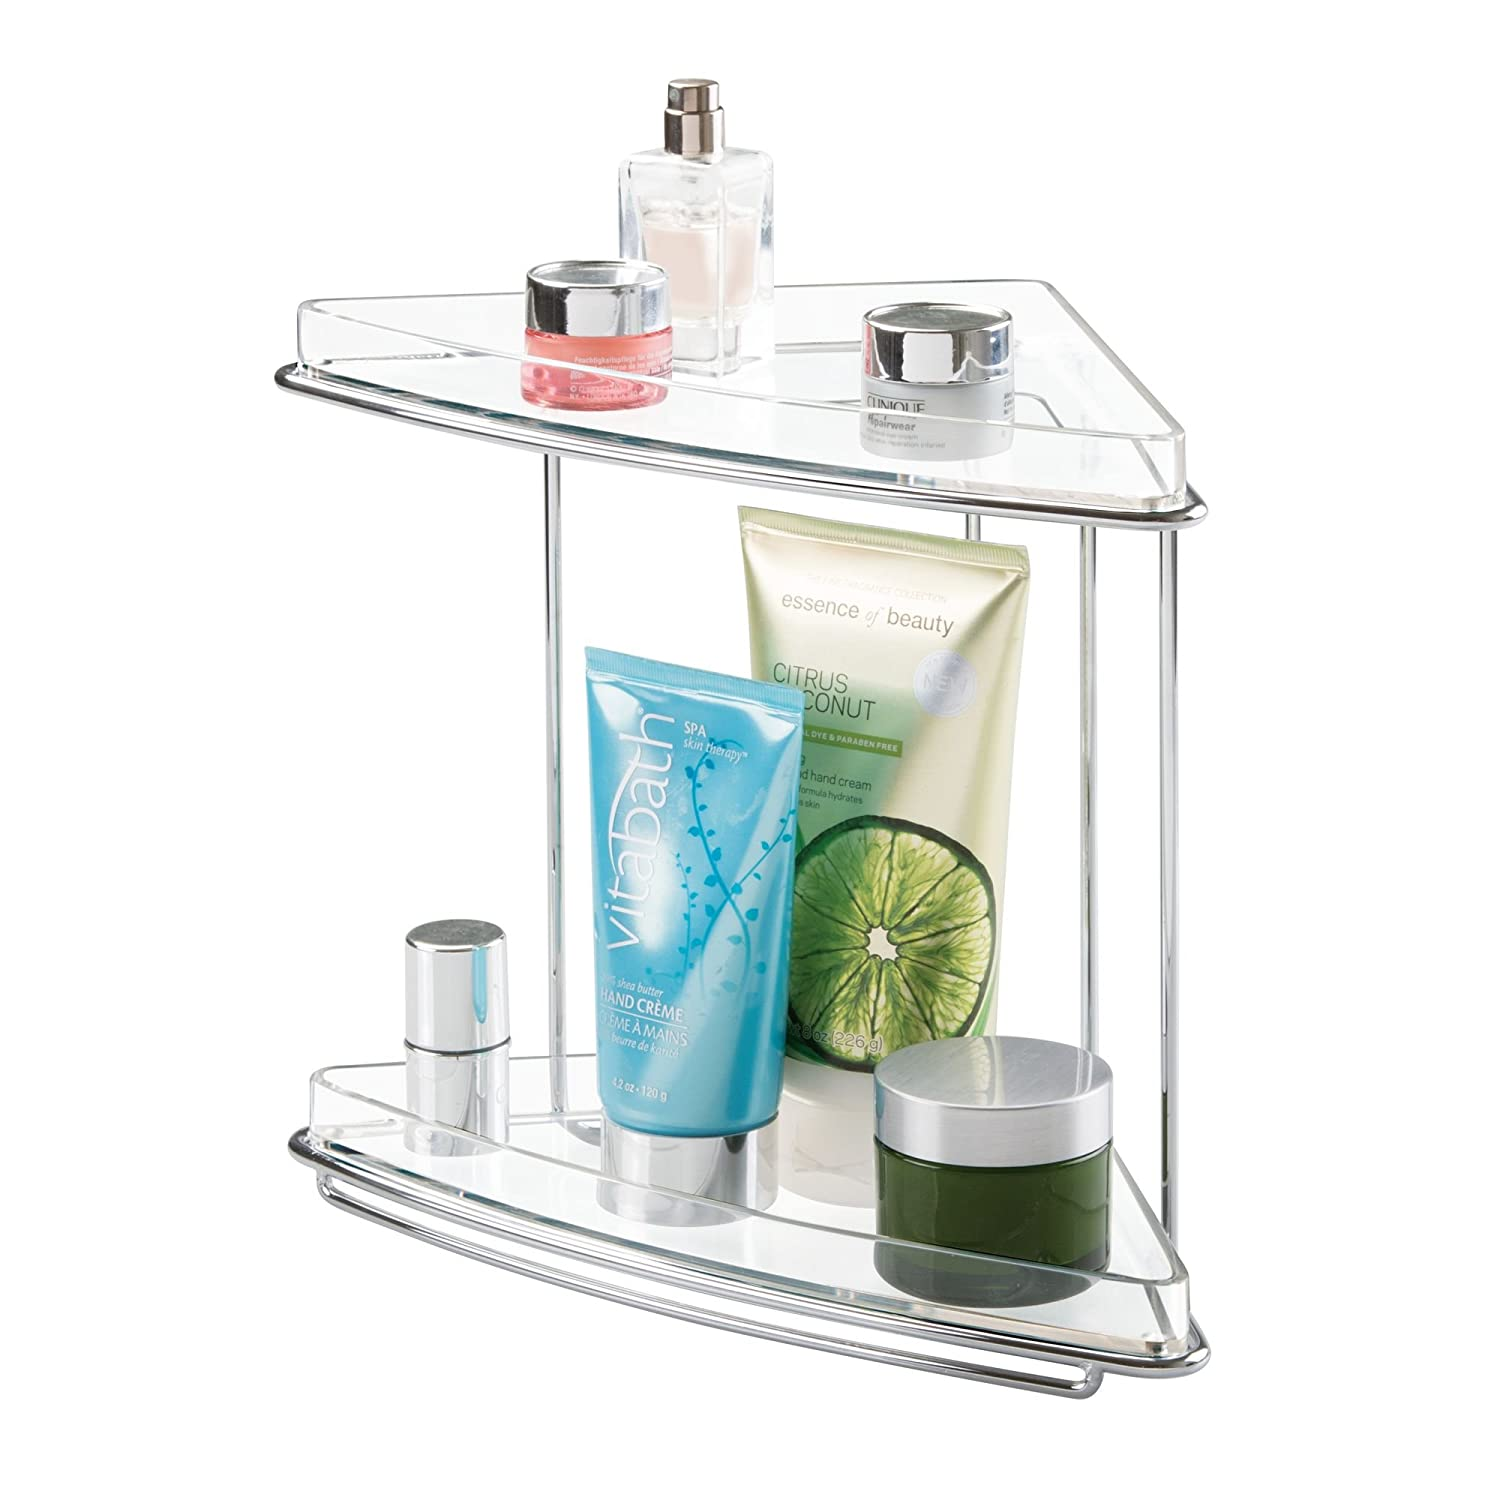 mDesign Metal 2-Tier Corner Storage Organizing Caddy Stand for Bathroom Vanity Countertops, Shelving or Under Sink - Free Standing, 2 Shelves - Chrome/Clear MetroDecor